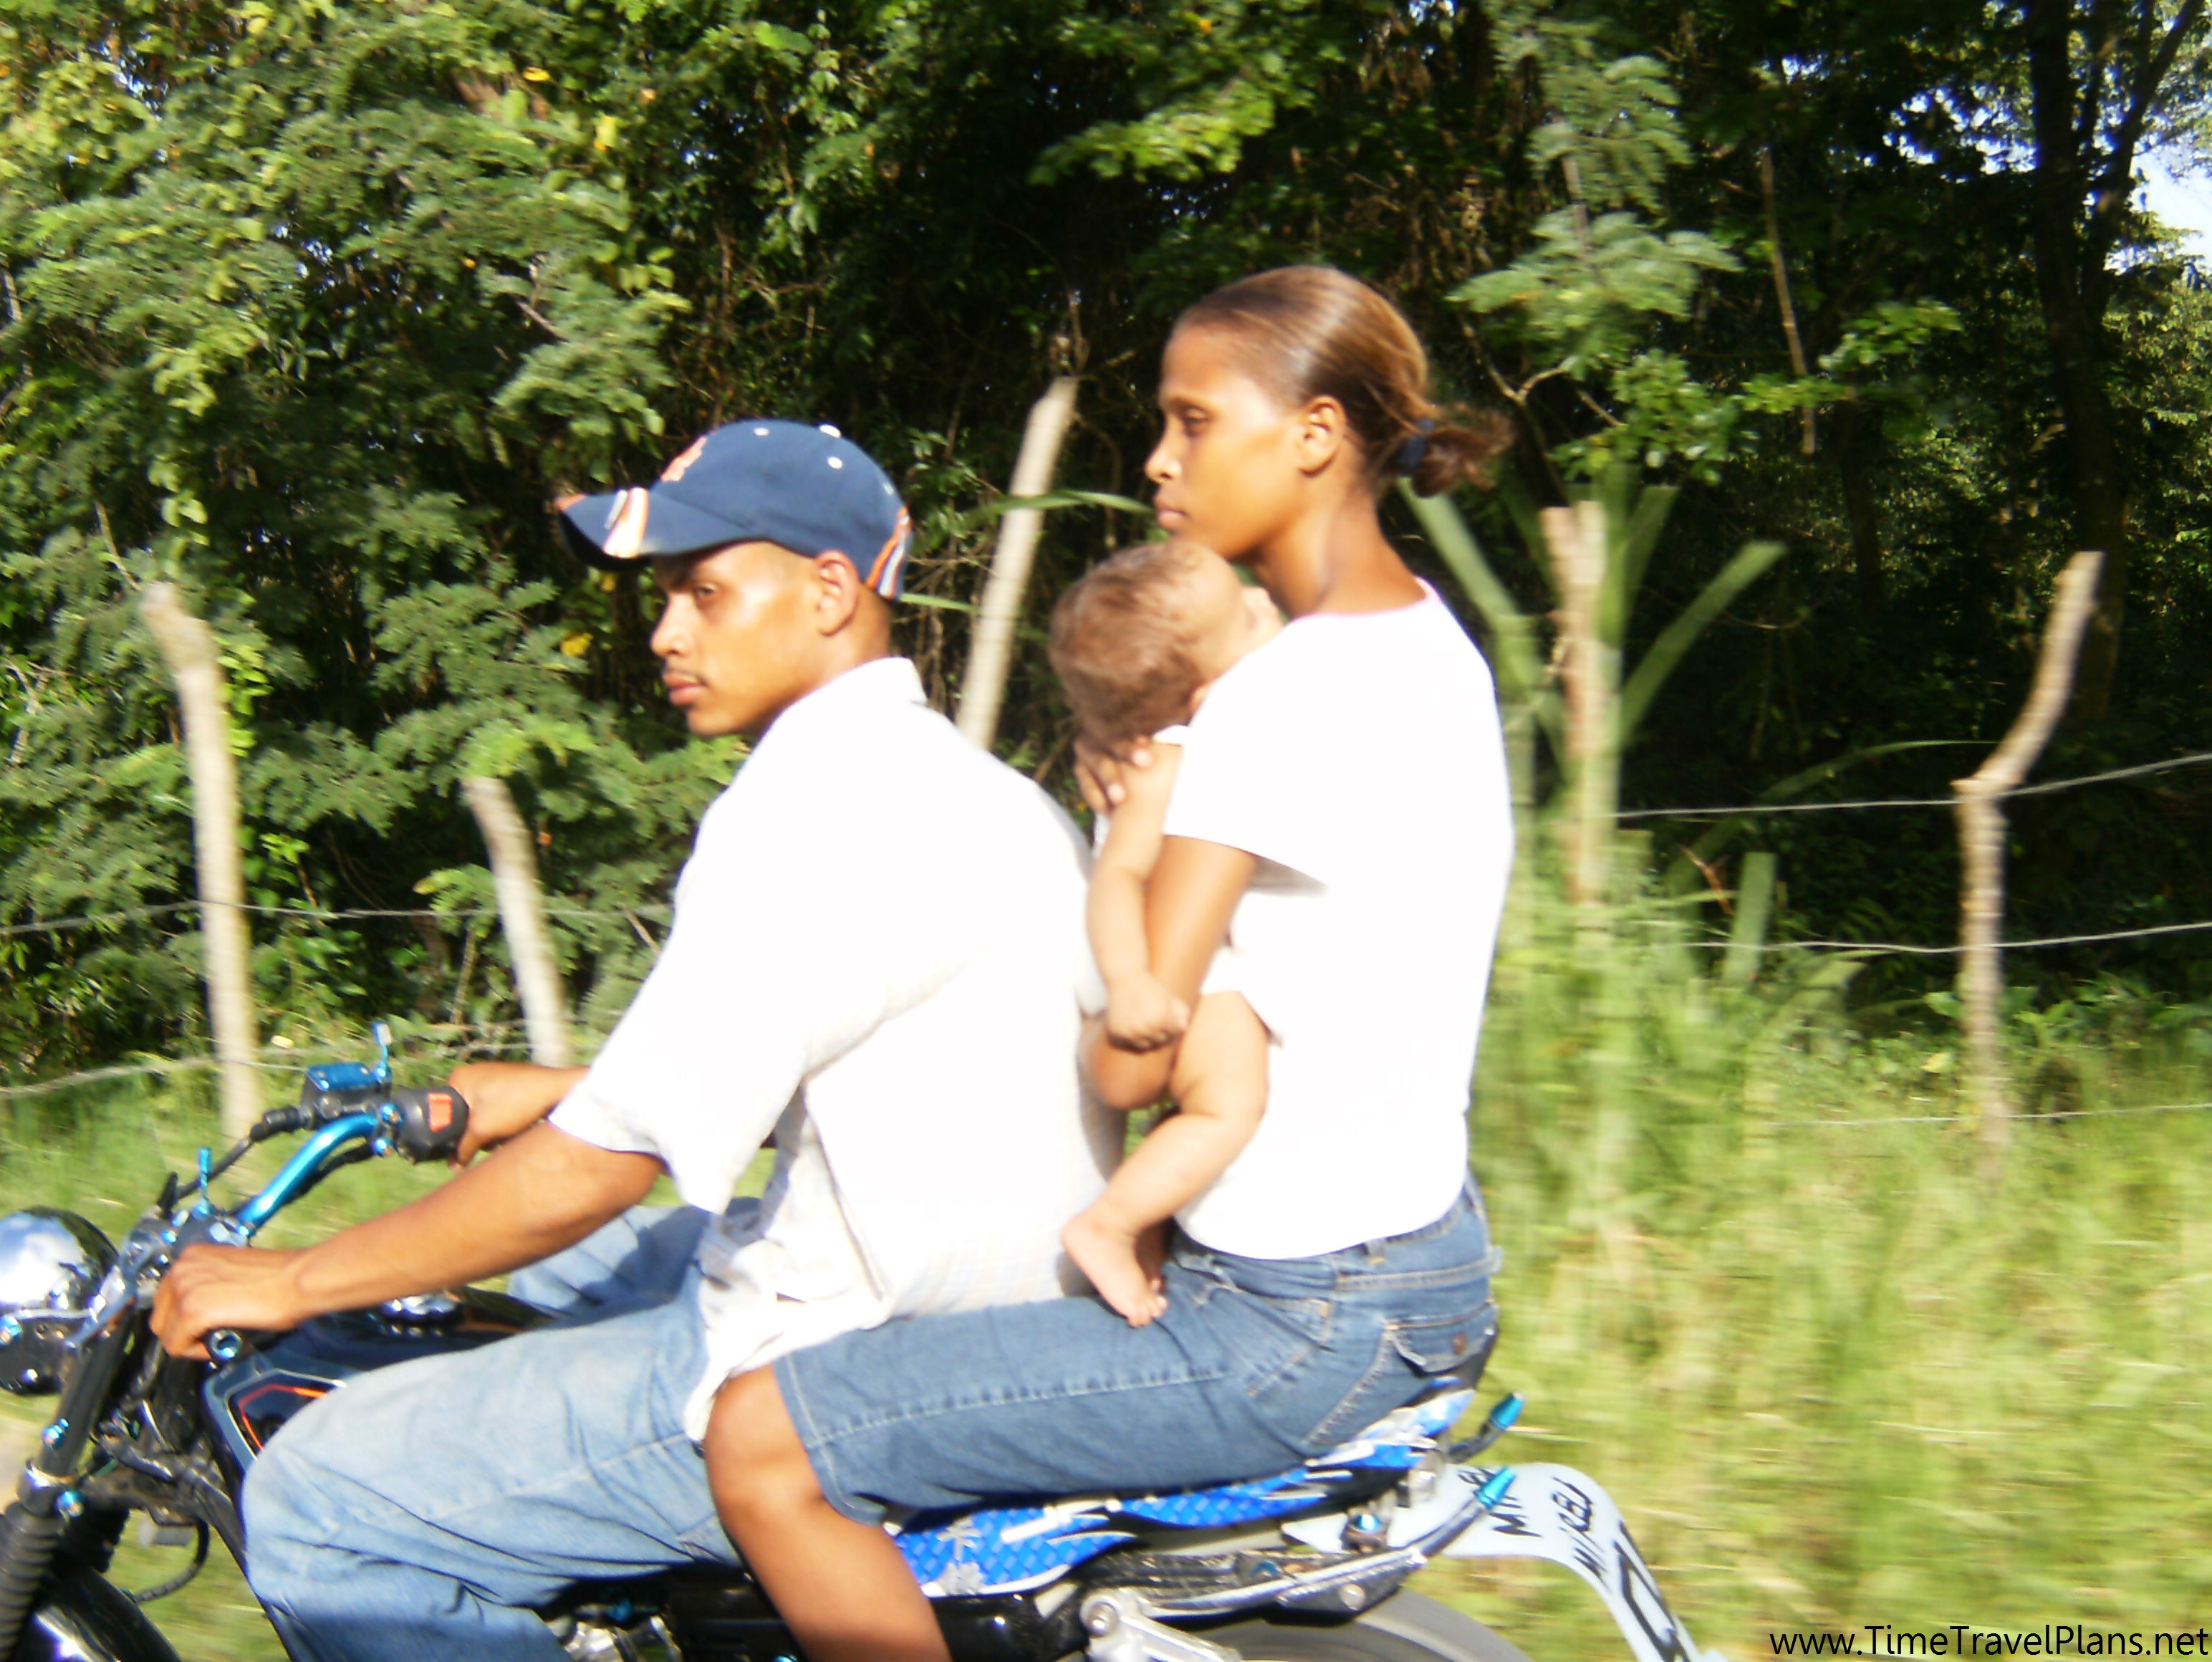 Dominican family riding on a motorcycle